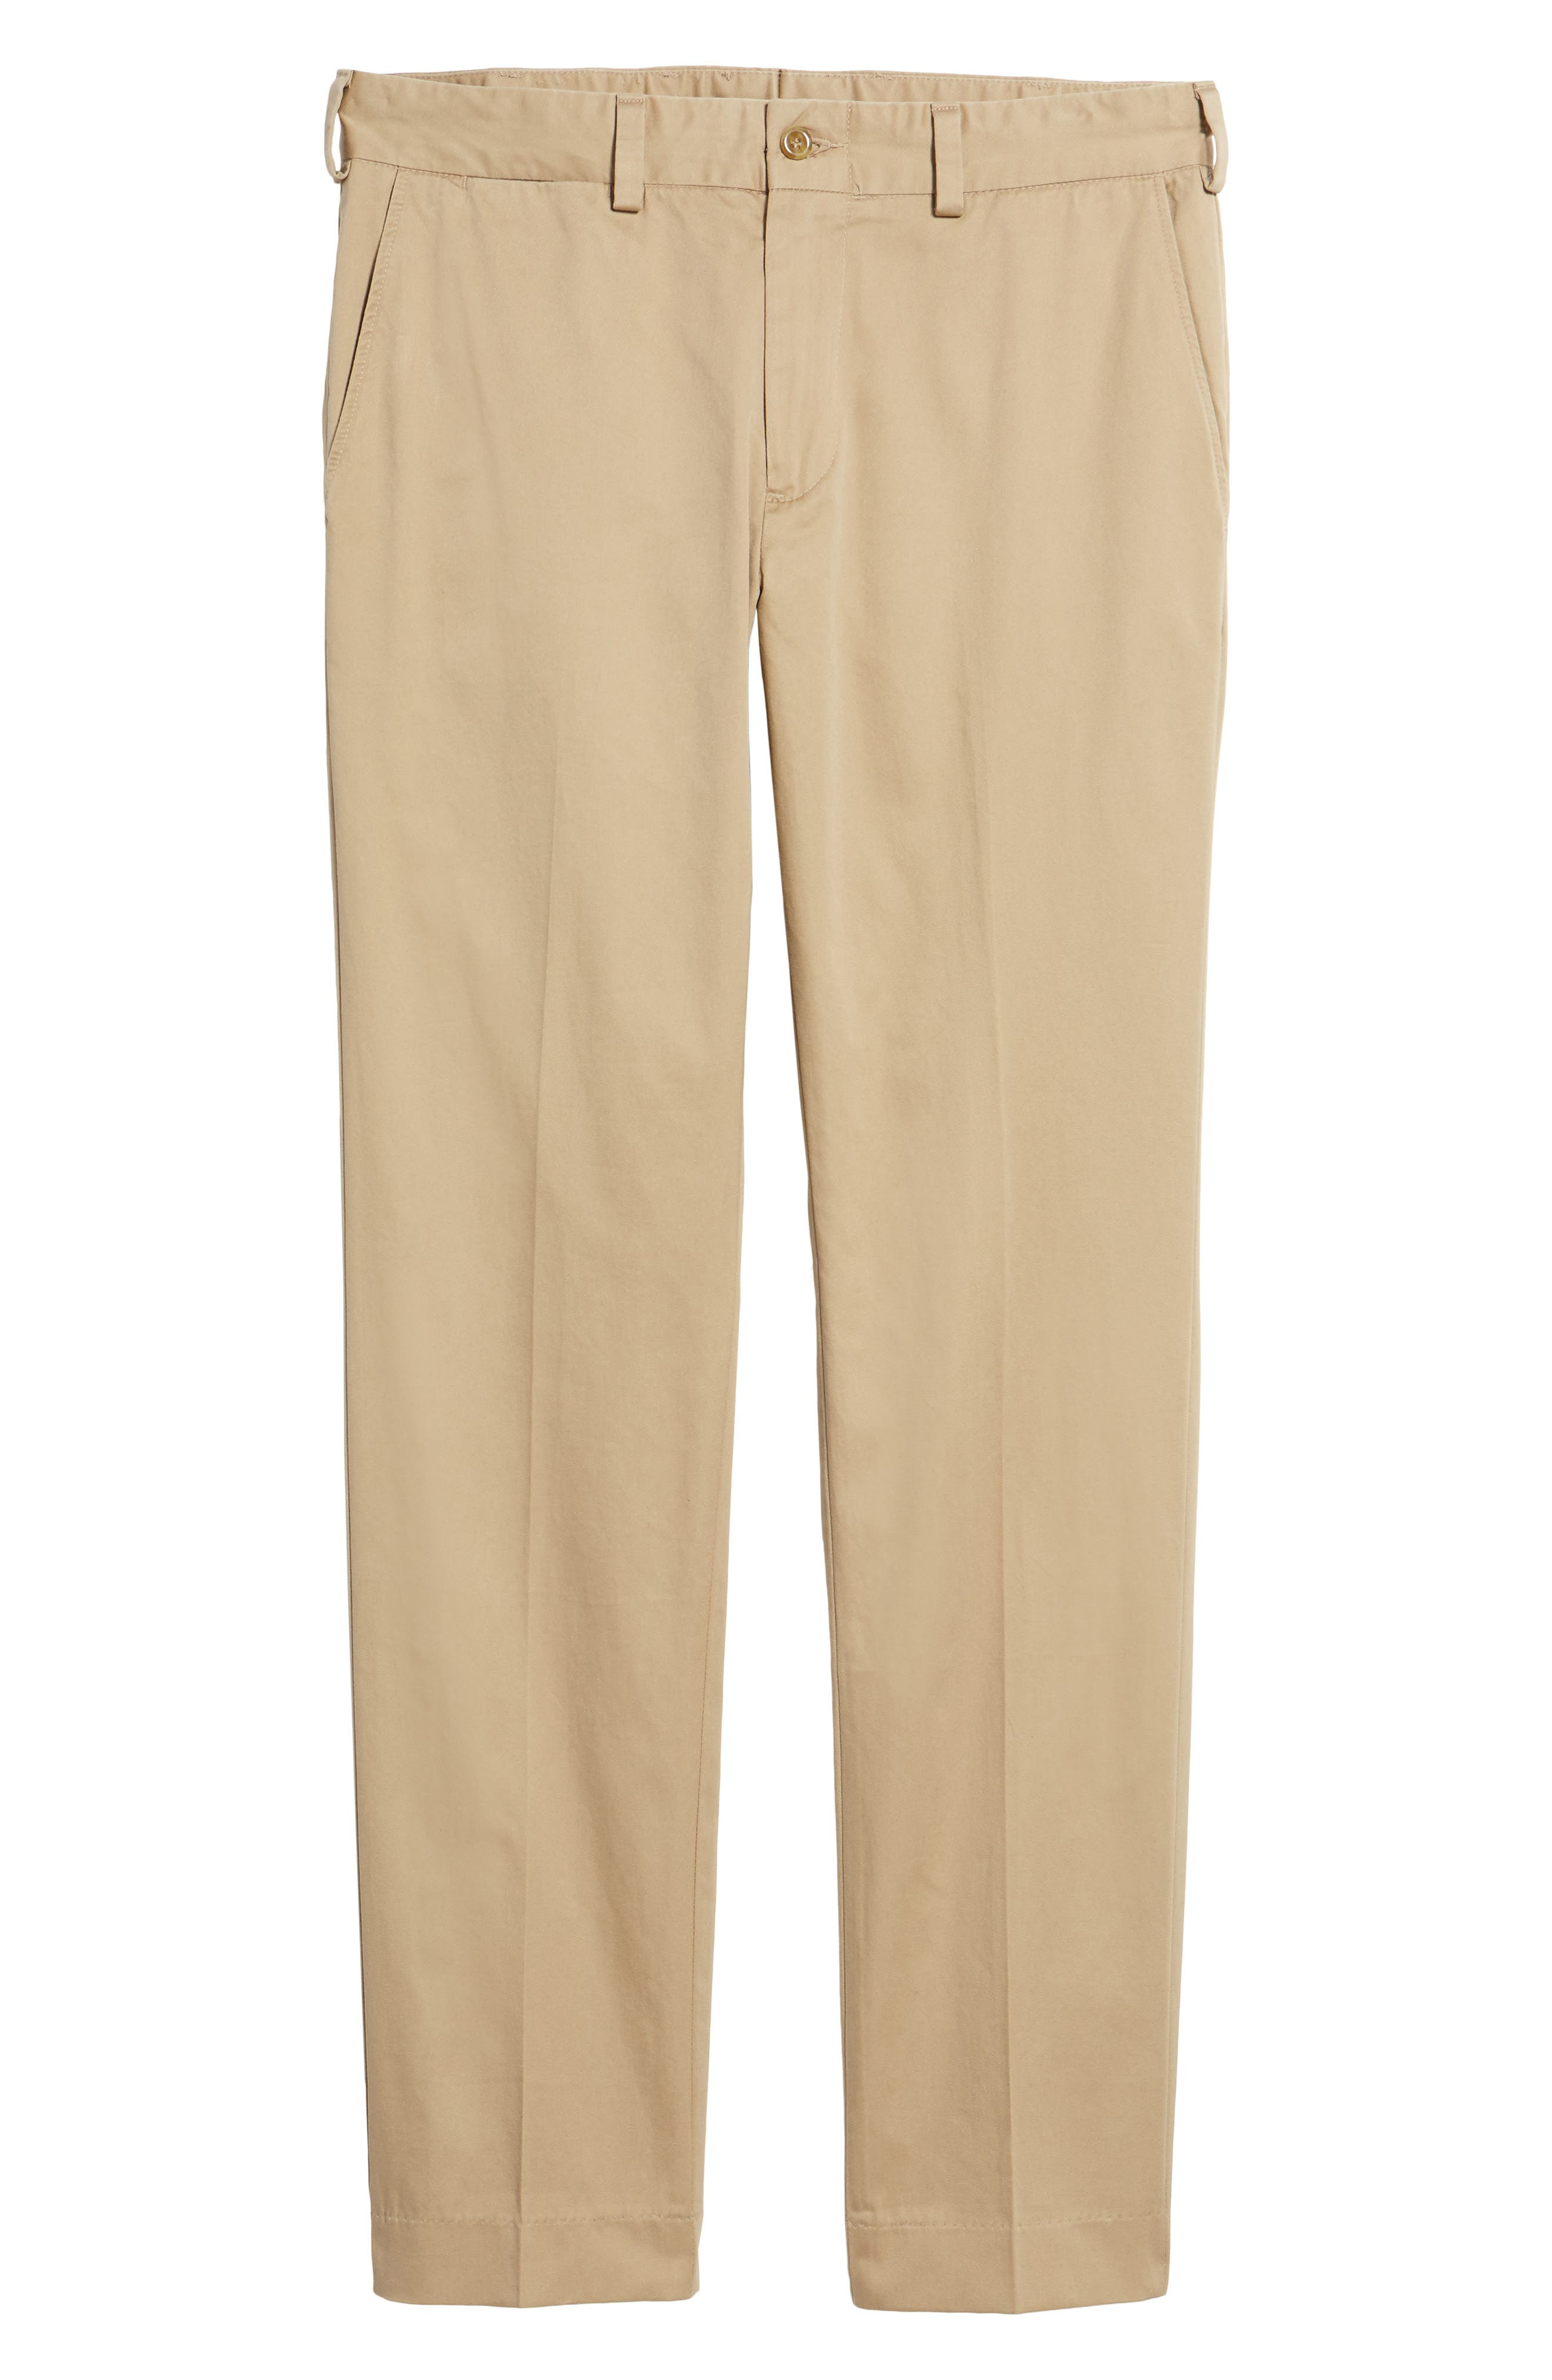 Slim Fit Chamois Cloth Pants,                             Alternate thumbnail 6, color,                             Camel